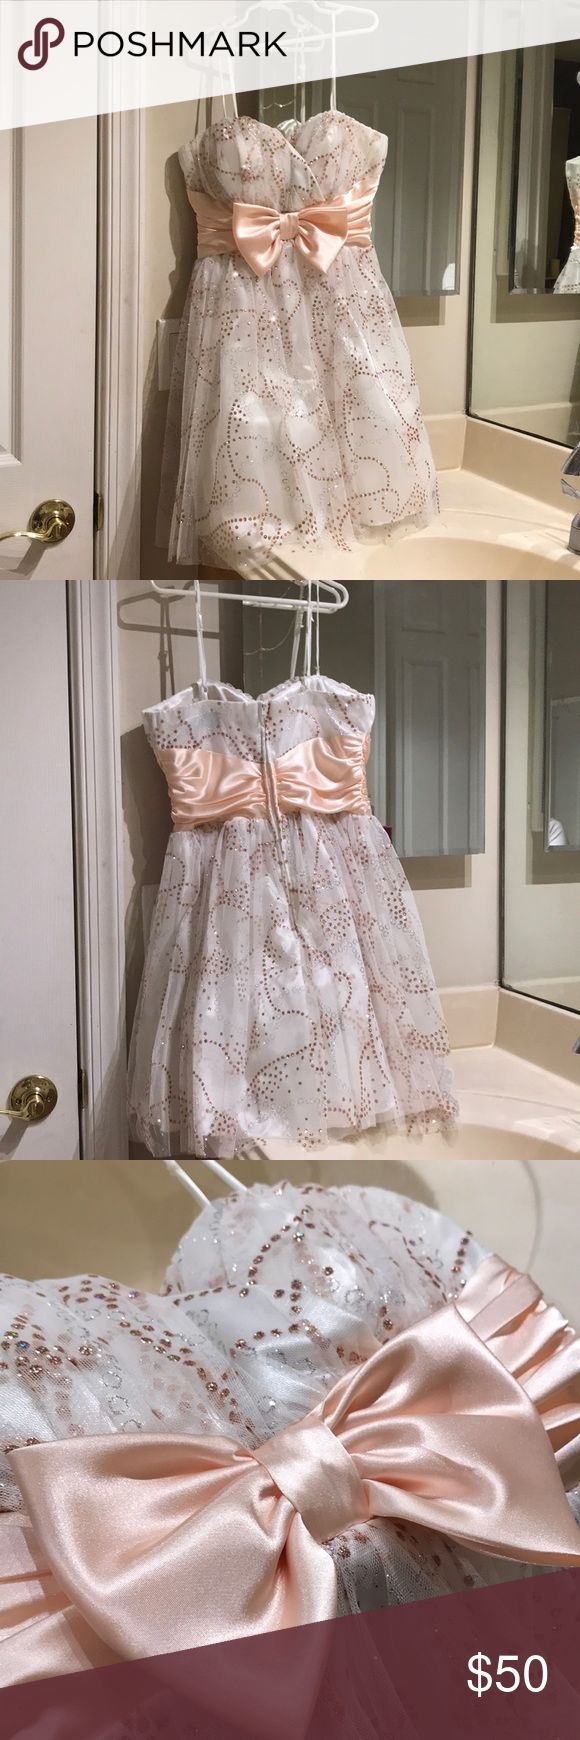 Camille La Vie white and copper dress Only worn once. Has copper and silver dots of glitter with a big peach bow in the center. Has a heart cut front. About 31 inches long from straps to bottom. Camille La Vie Dresses Formal